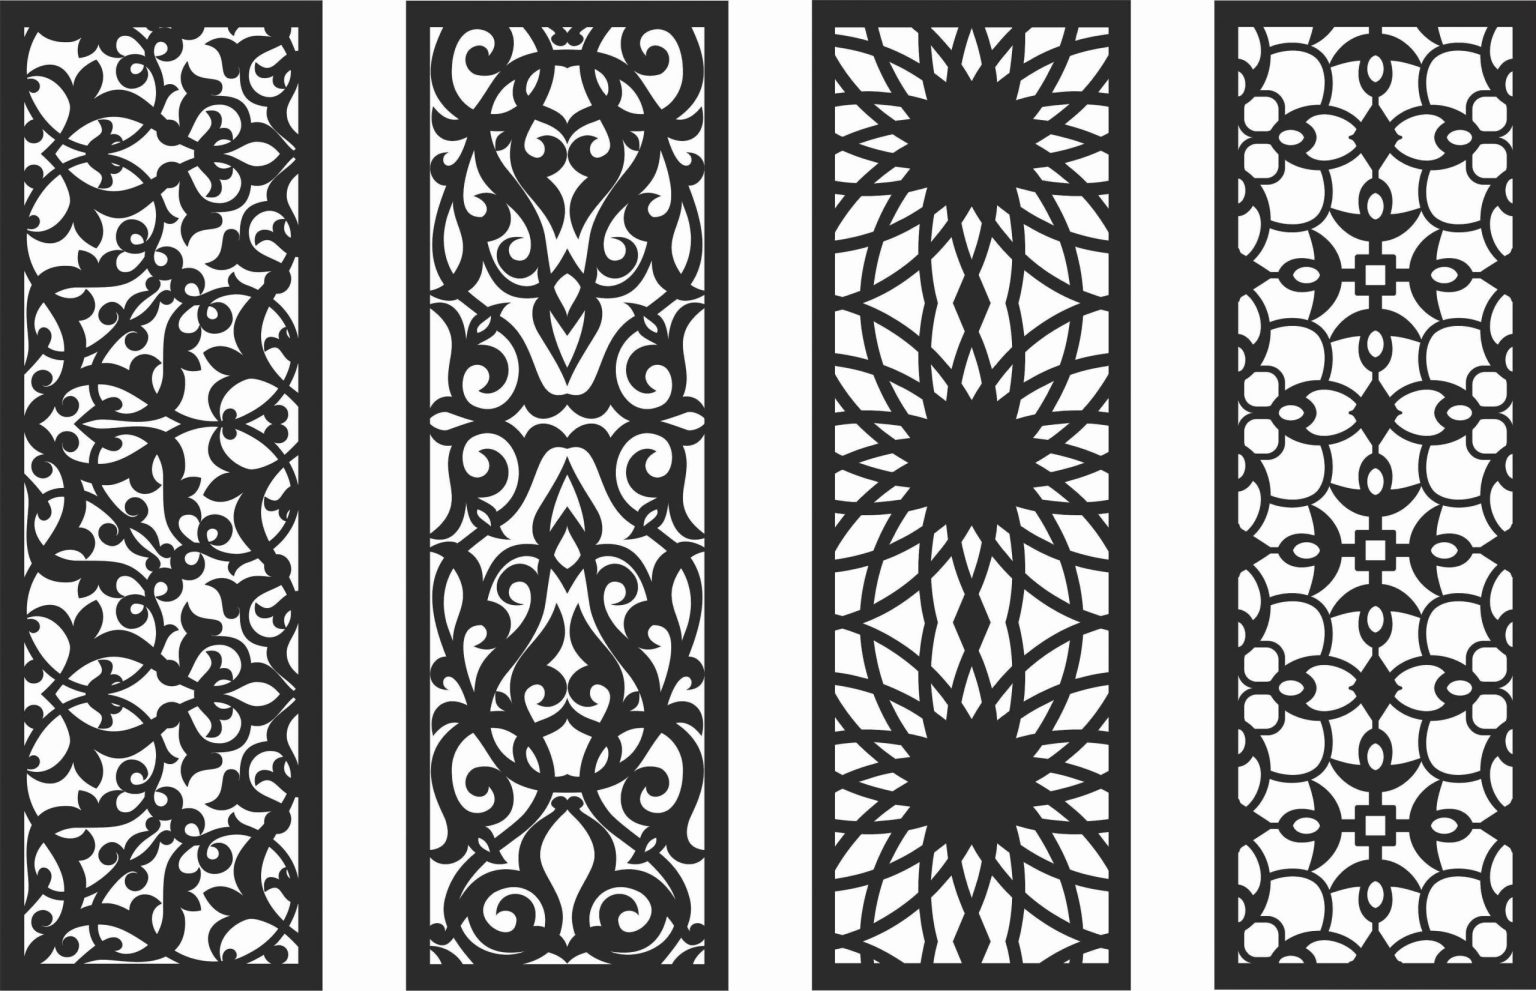 Decorative Screen Patterns For Laser Cutting 131 Free DXF File